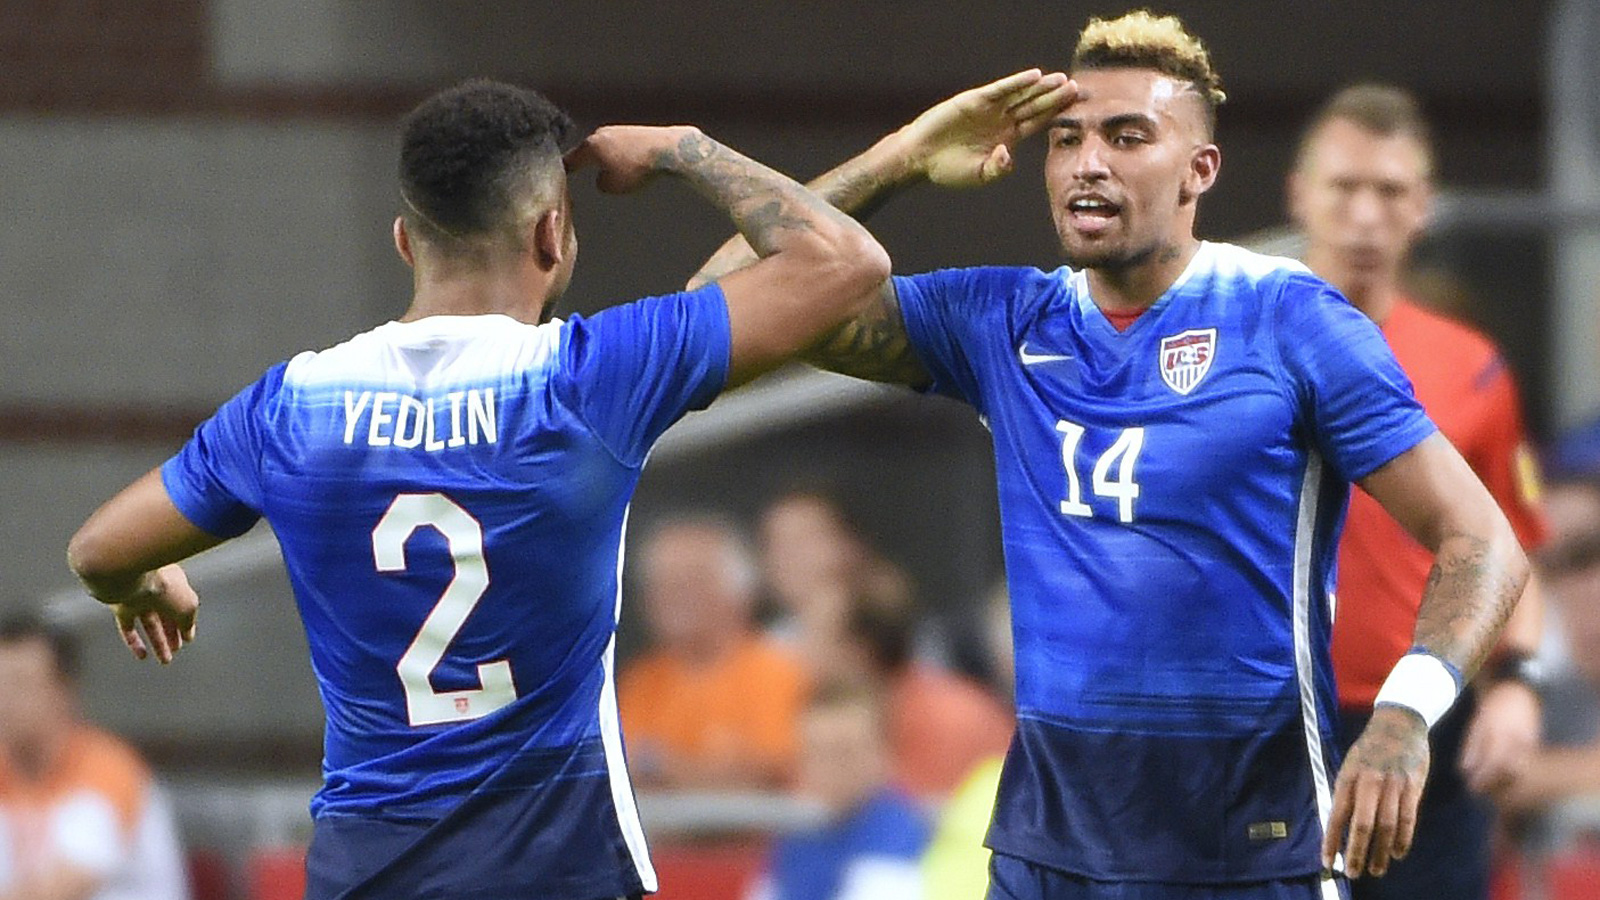 DeAndre Yedlin and Danny Williams salute each other after the latter's goal–his first international strike–brought the U.S. level with the Netherlands at 3-3 in the 89th minute.